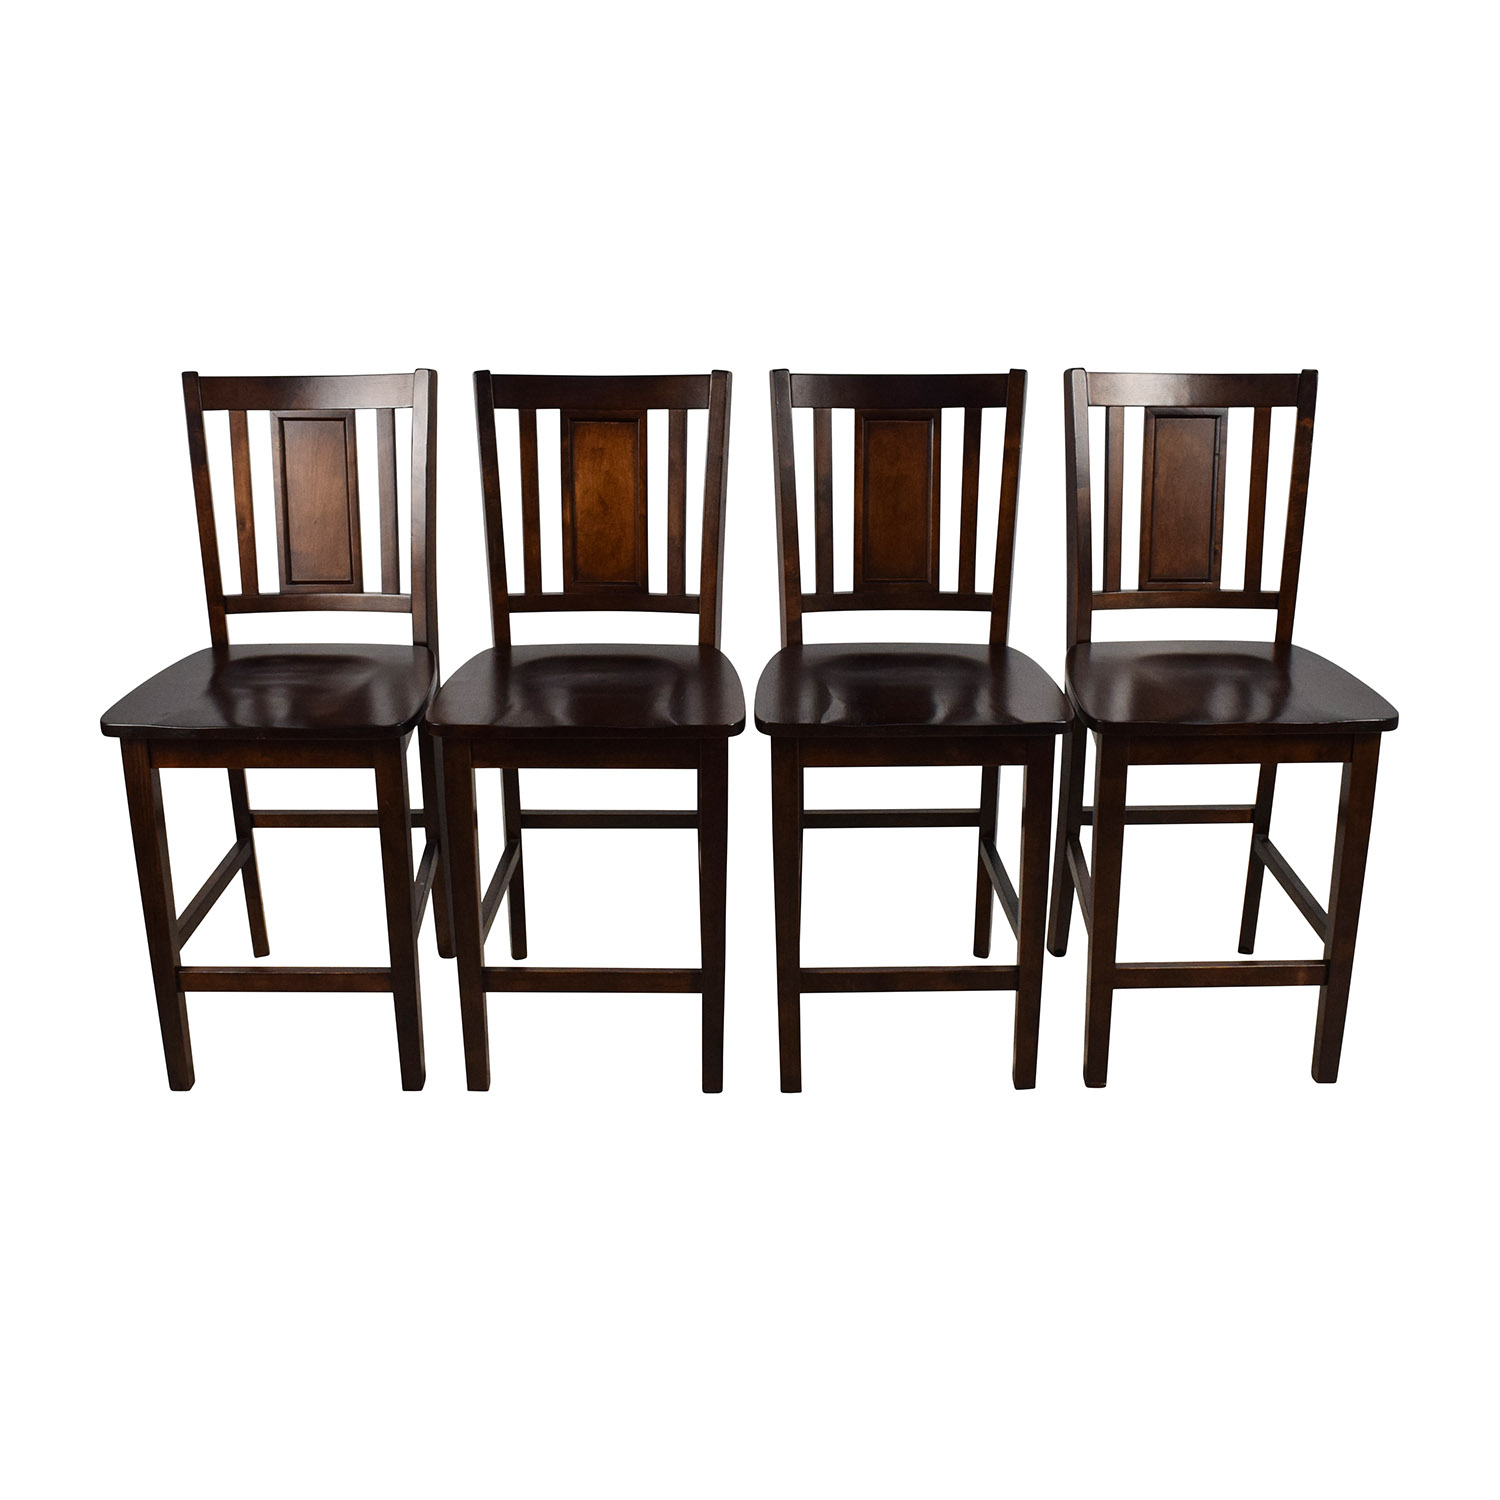 Set of Full Back Bar Stools